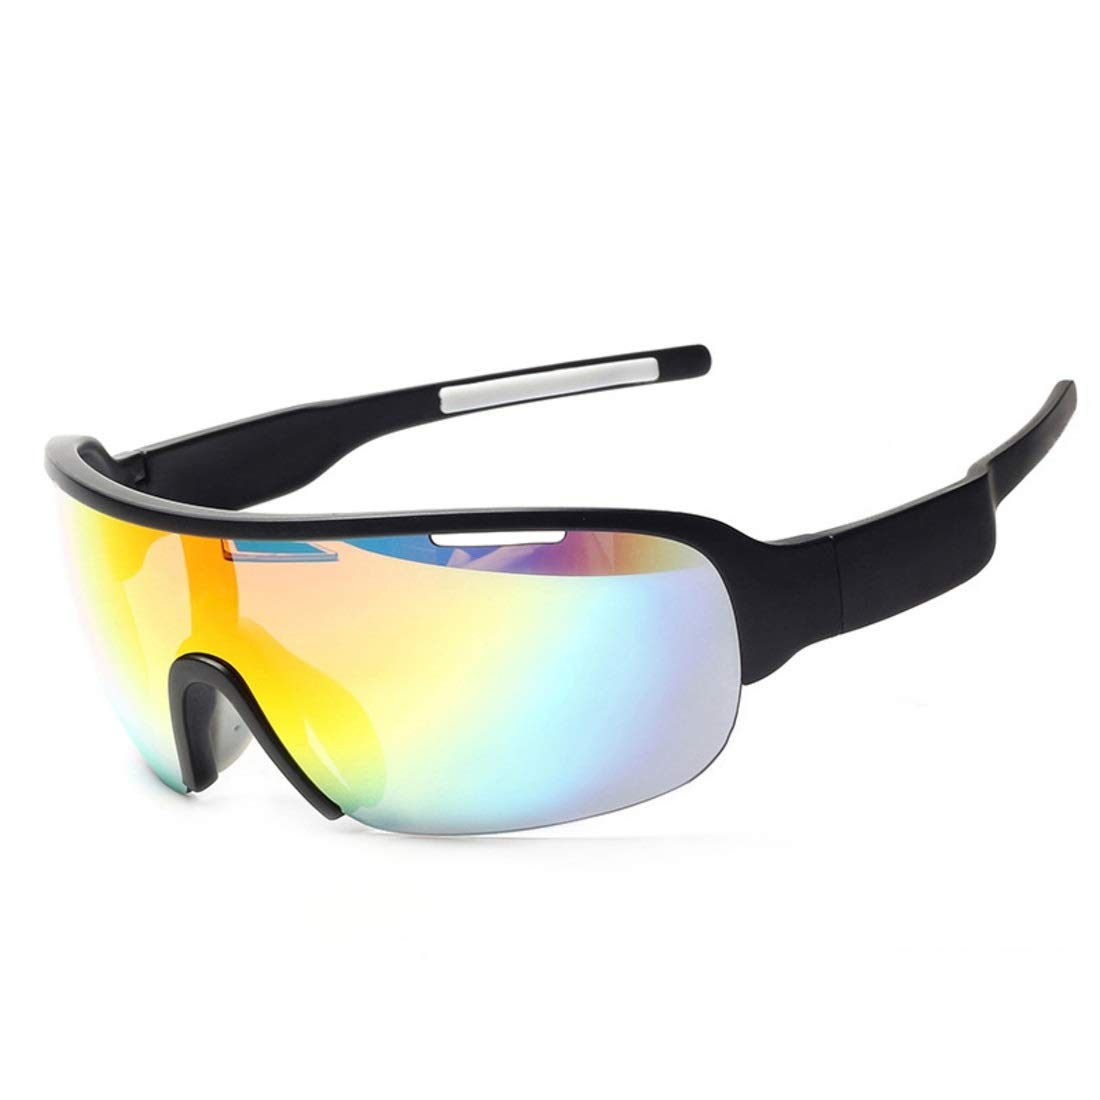 BAOYIT Half Frame Goggles Mountain Bike Windproof Sand Riding Outdoor Sports Glasses for Women Men (Color : A) by BAOYIT